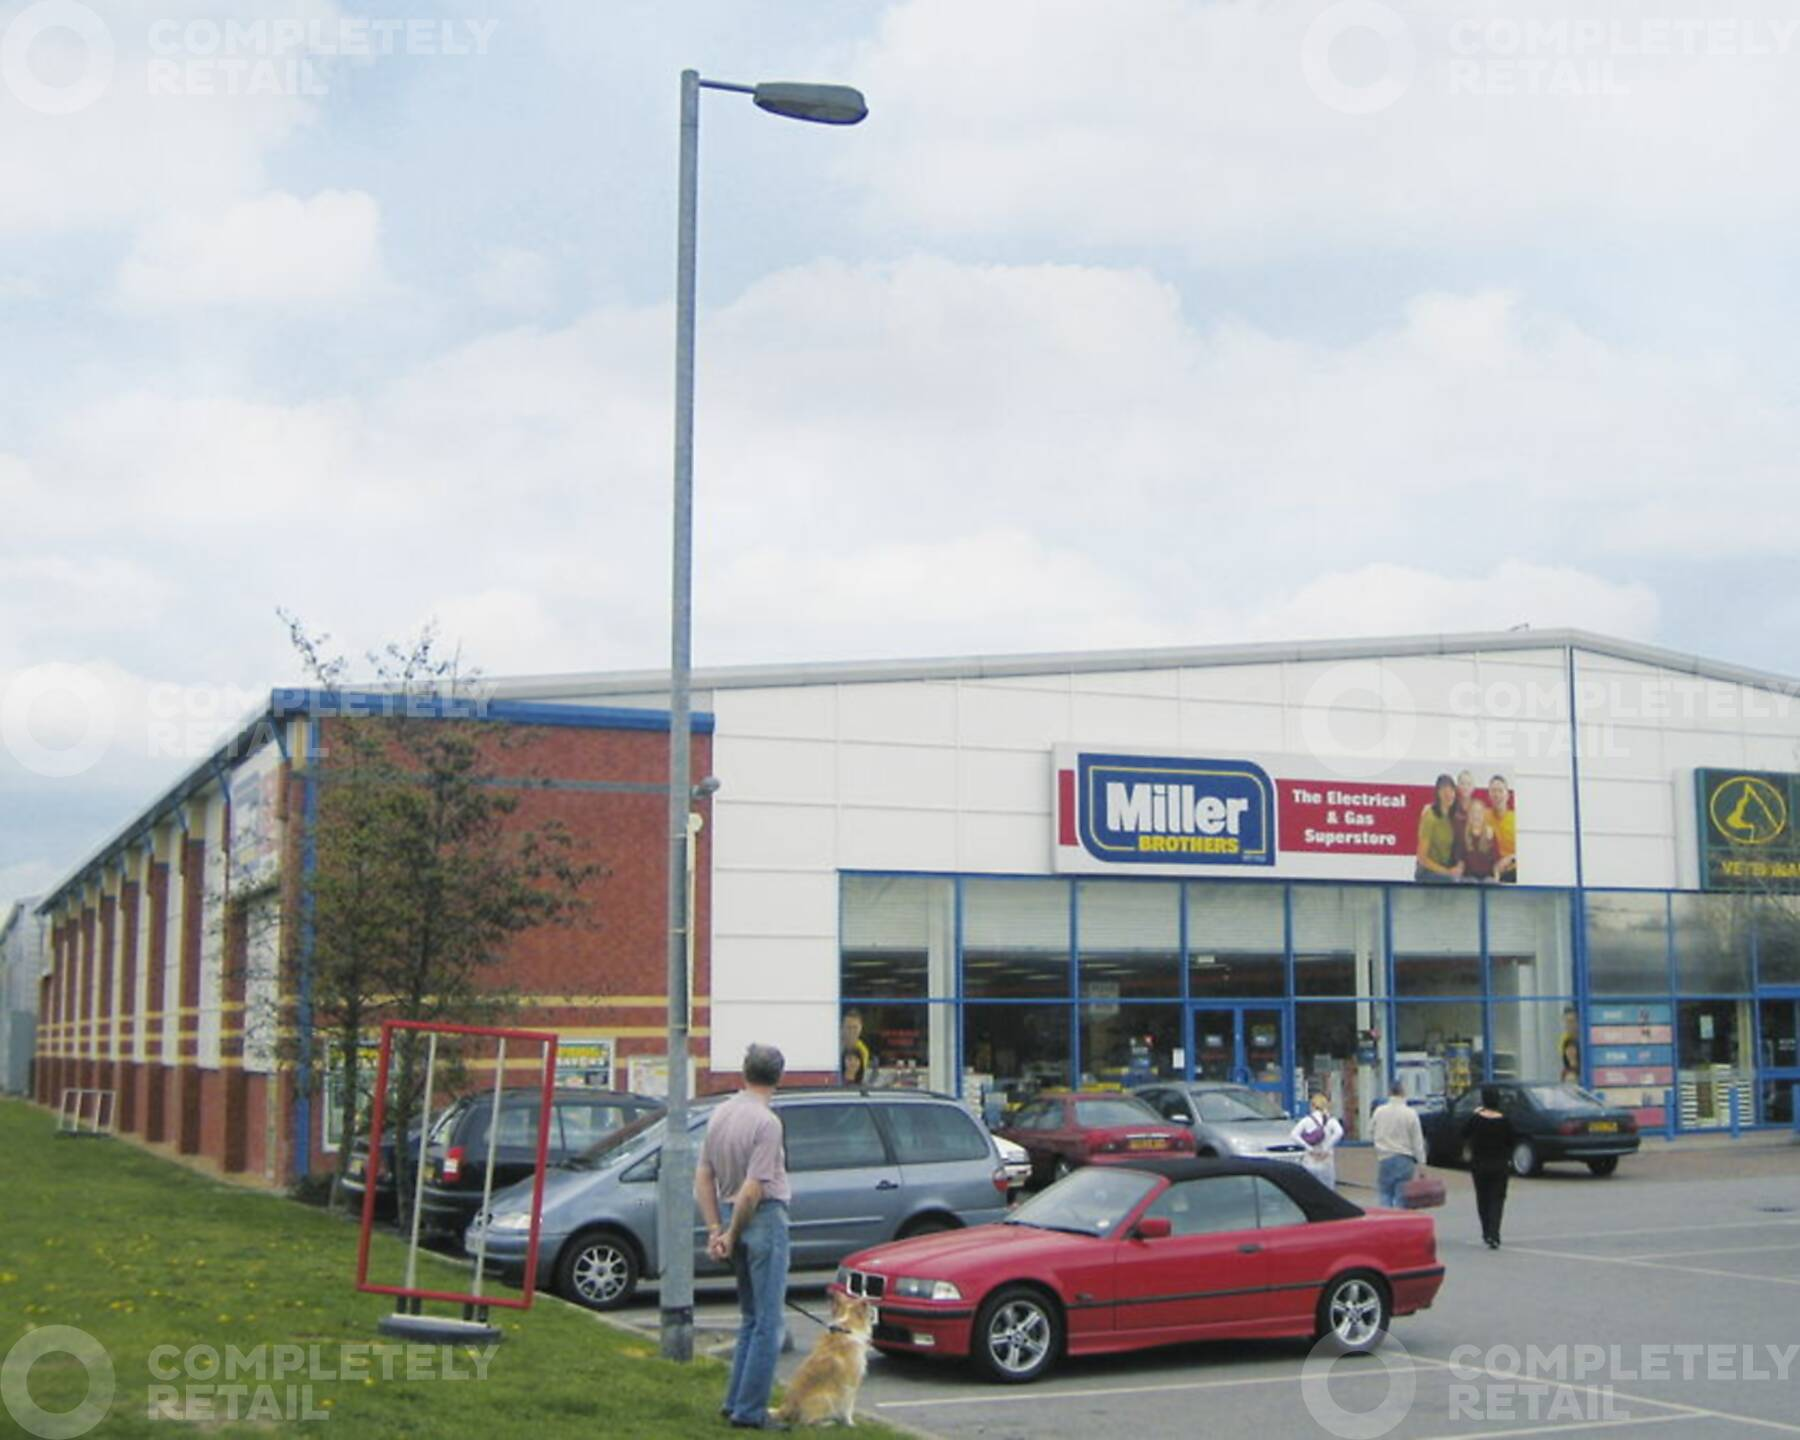 Rom Valley Way Retail Park